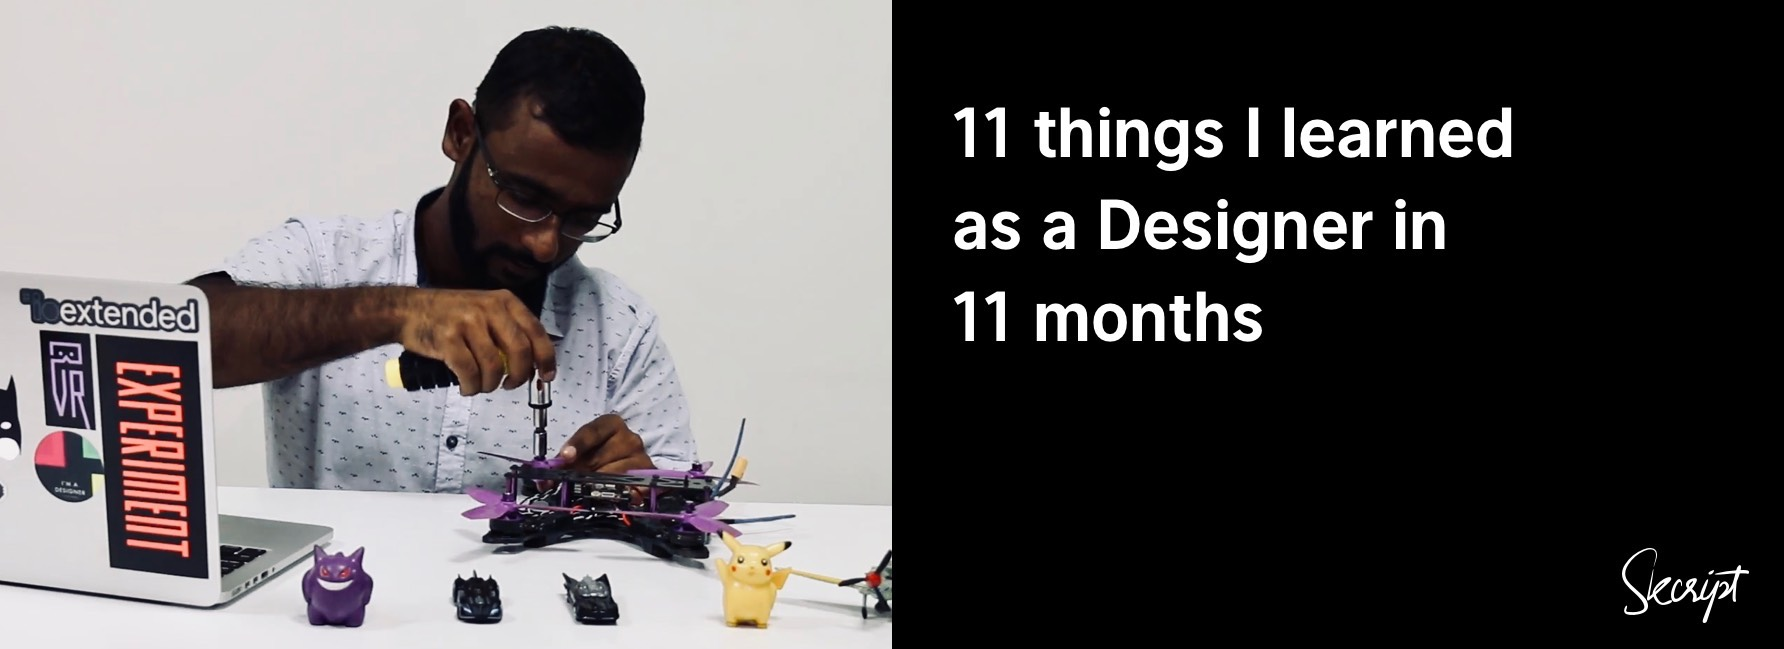 11 things I learned as Designer in 11 months